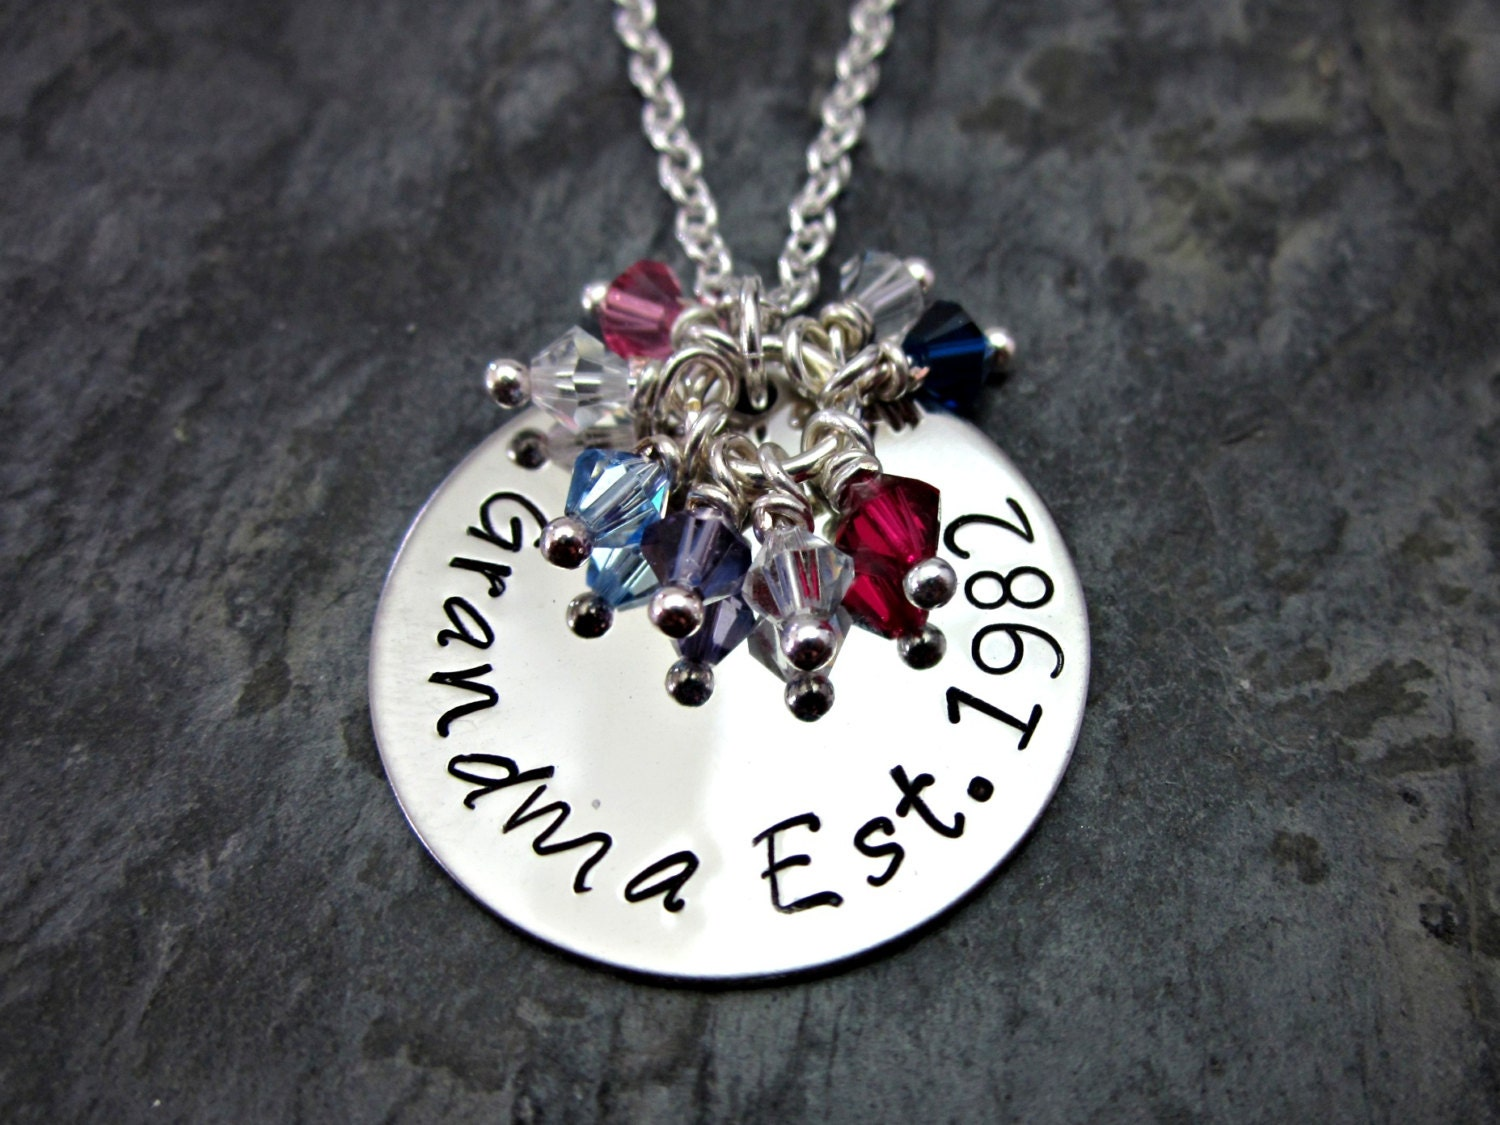 Grandma's / Grandmother's Necklace - Personalized with Birthstones and Established Date